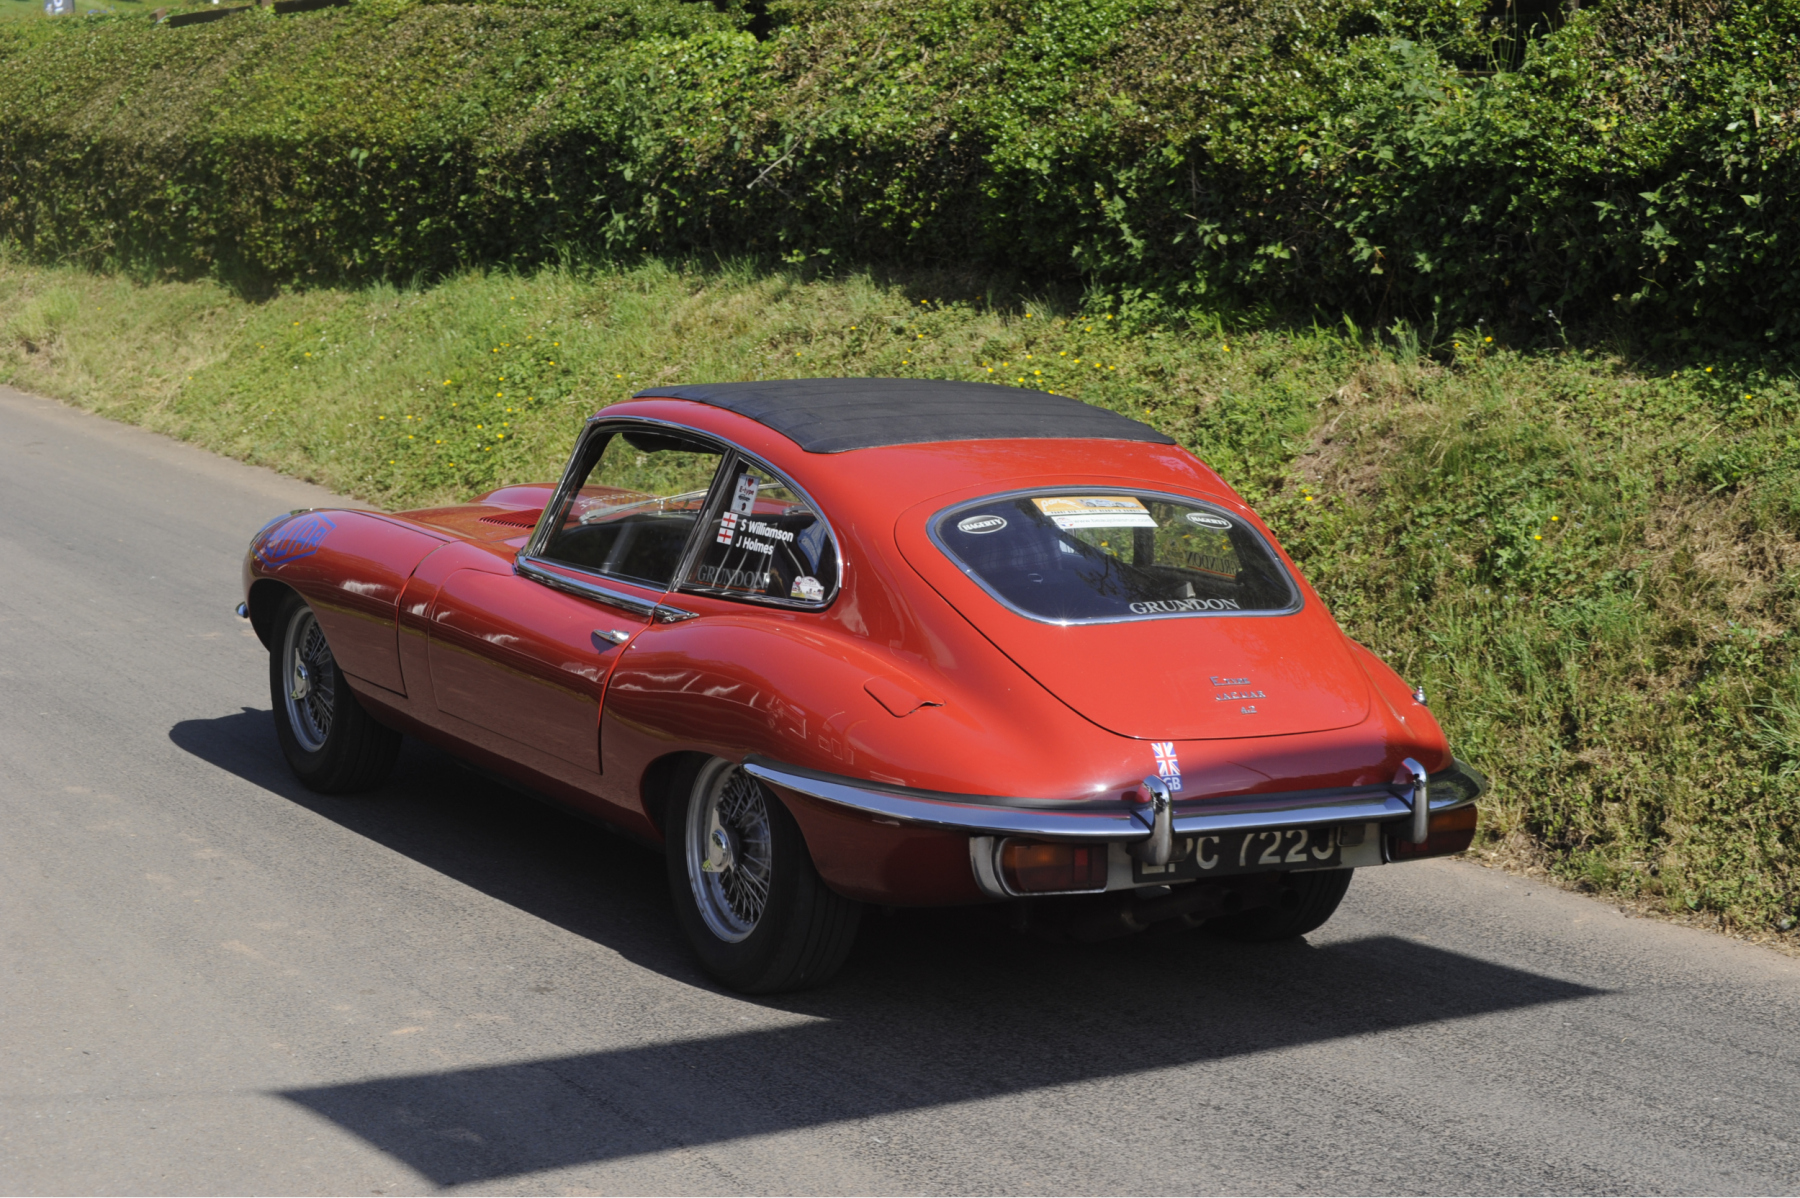 E-type-60-Saturday-photo-by-Abigail-Humphries-40